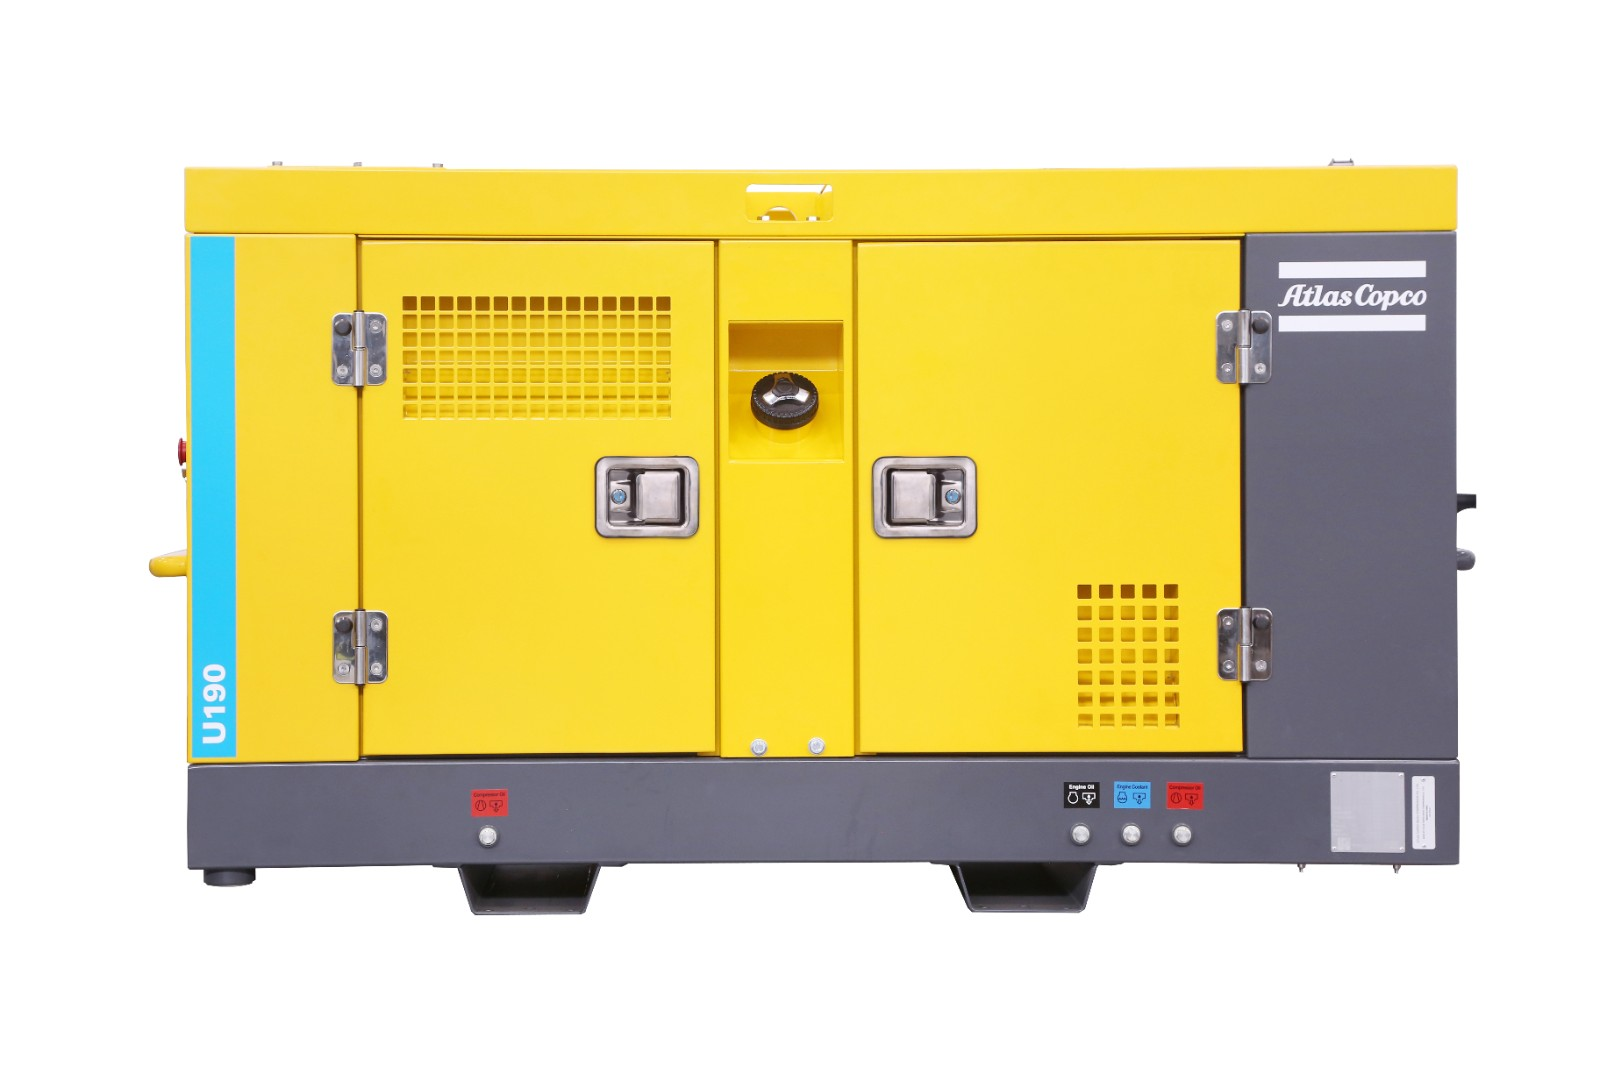 Motocompressore Atlas Copco U190 in vendita